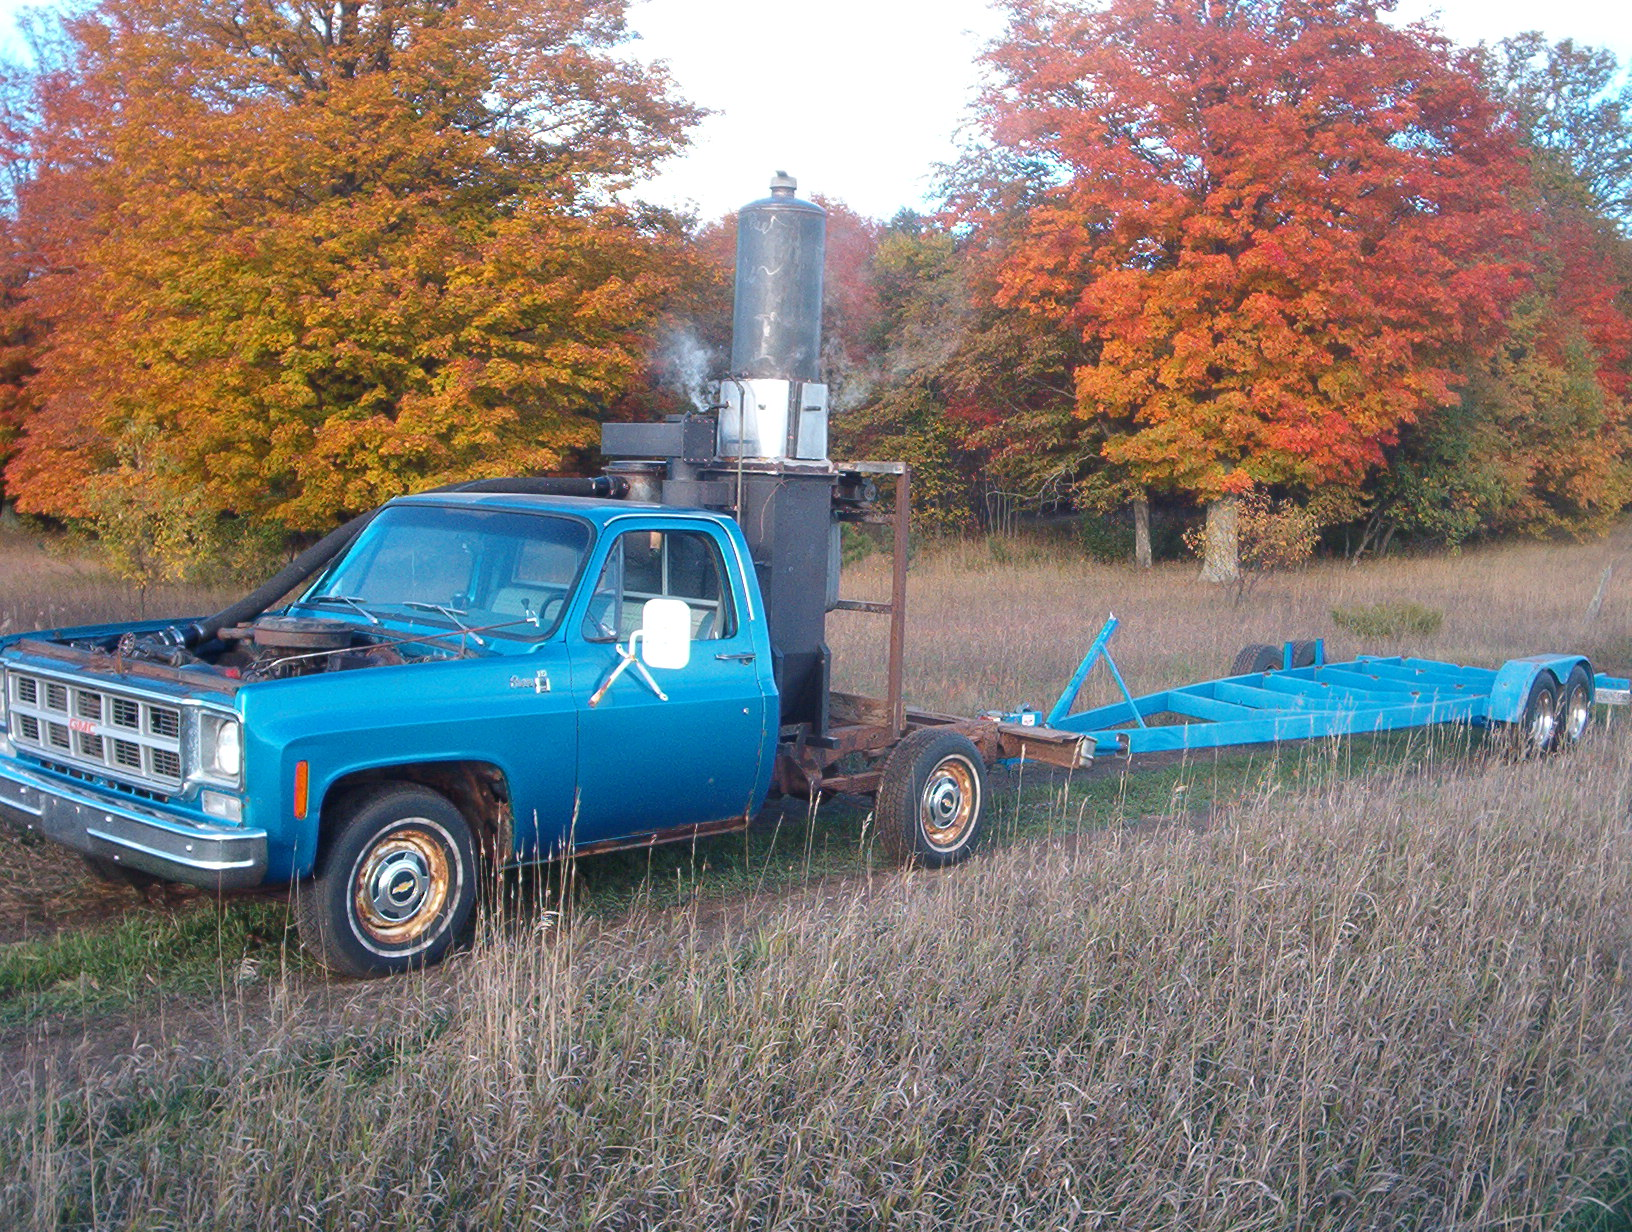 Maple Block Fueled 1978 GMC Pickup with 350CID (5L) engine